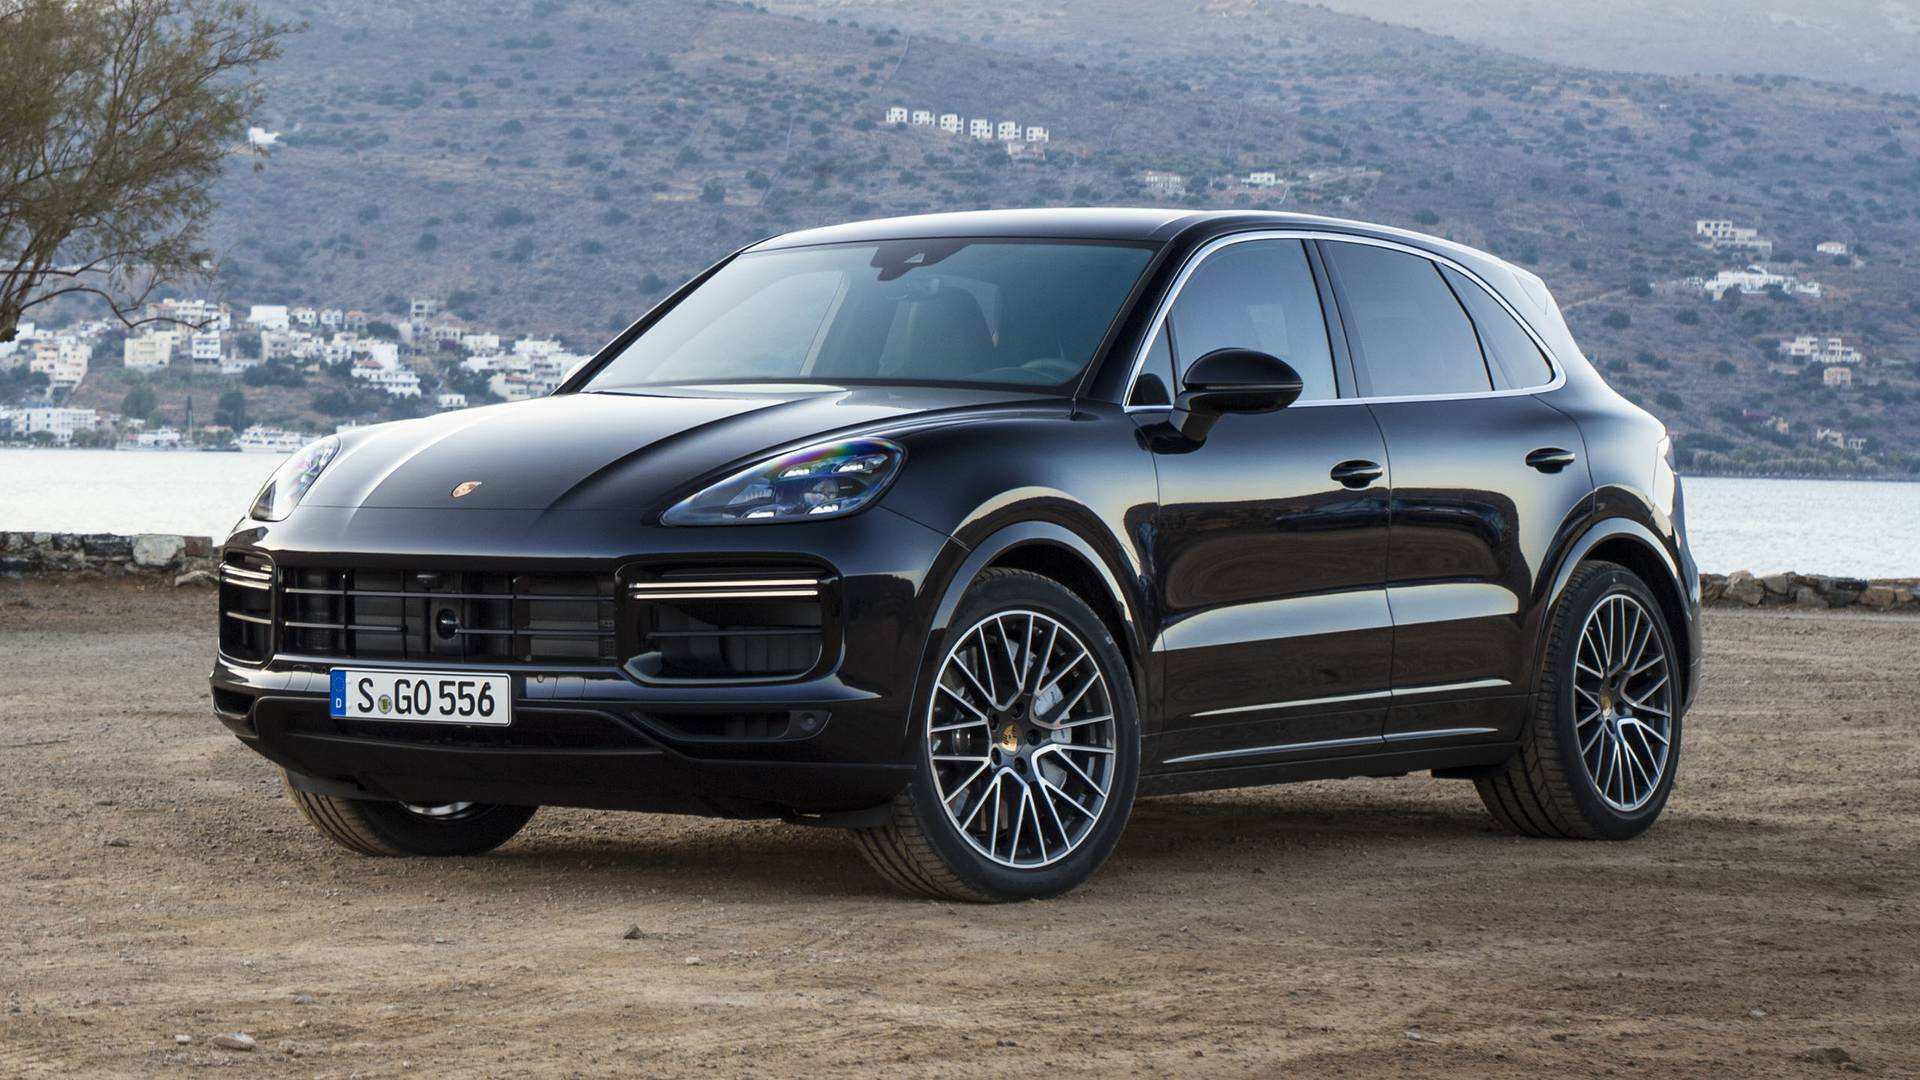 38 All New 2019 Porsche Cayenne Price Design And Review